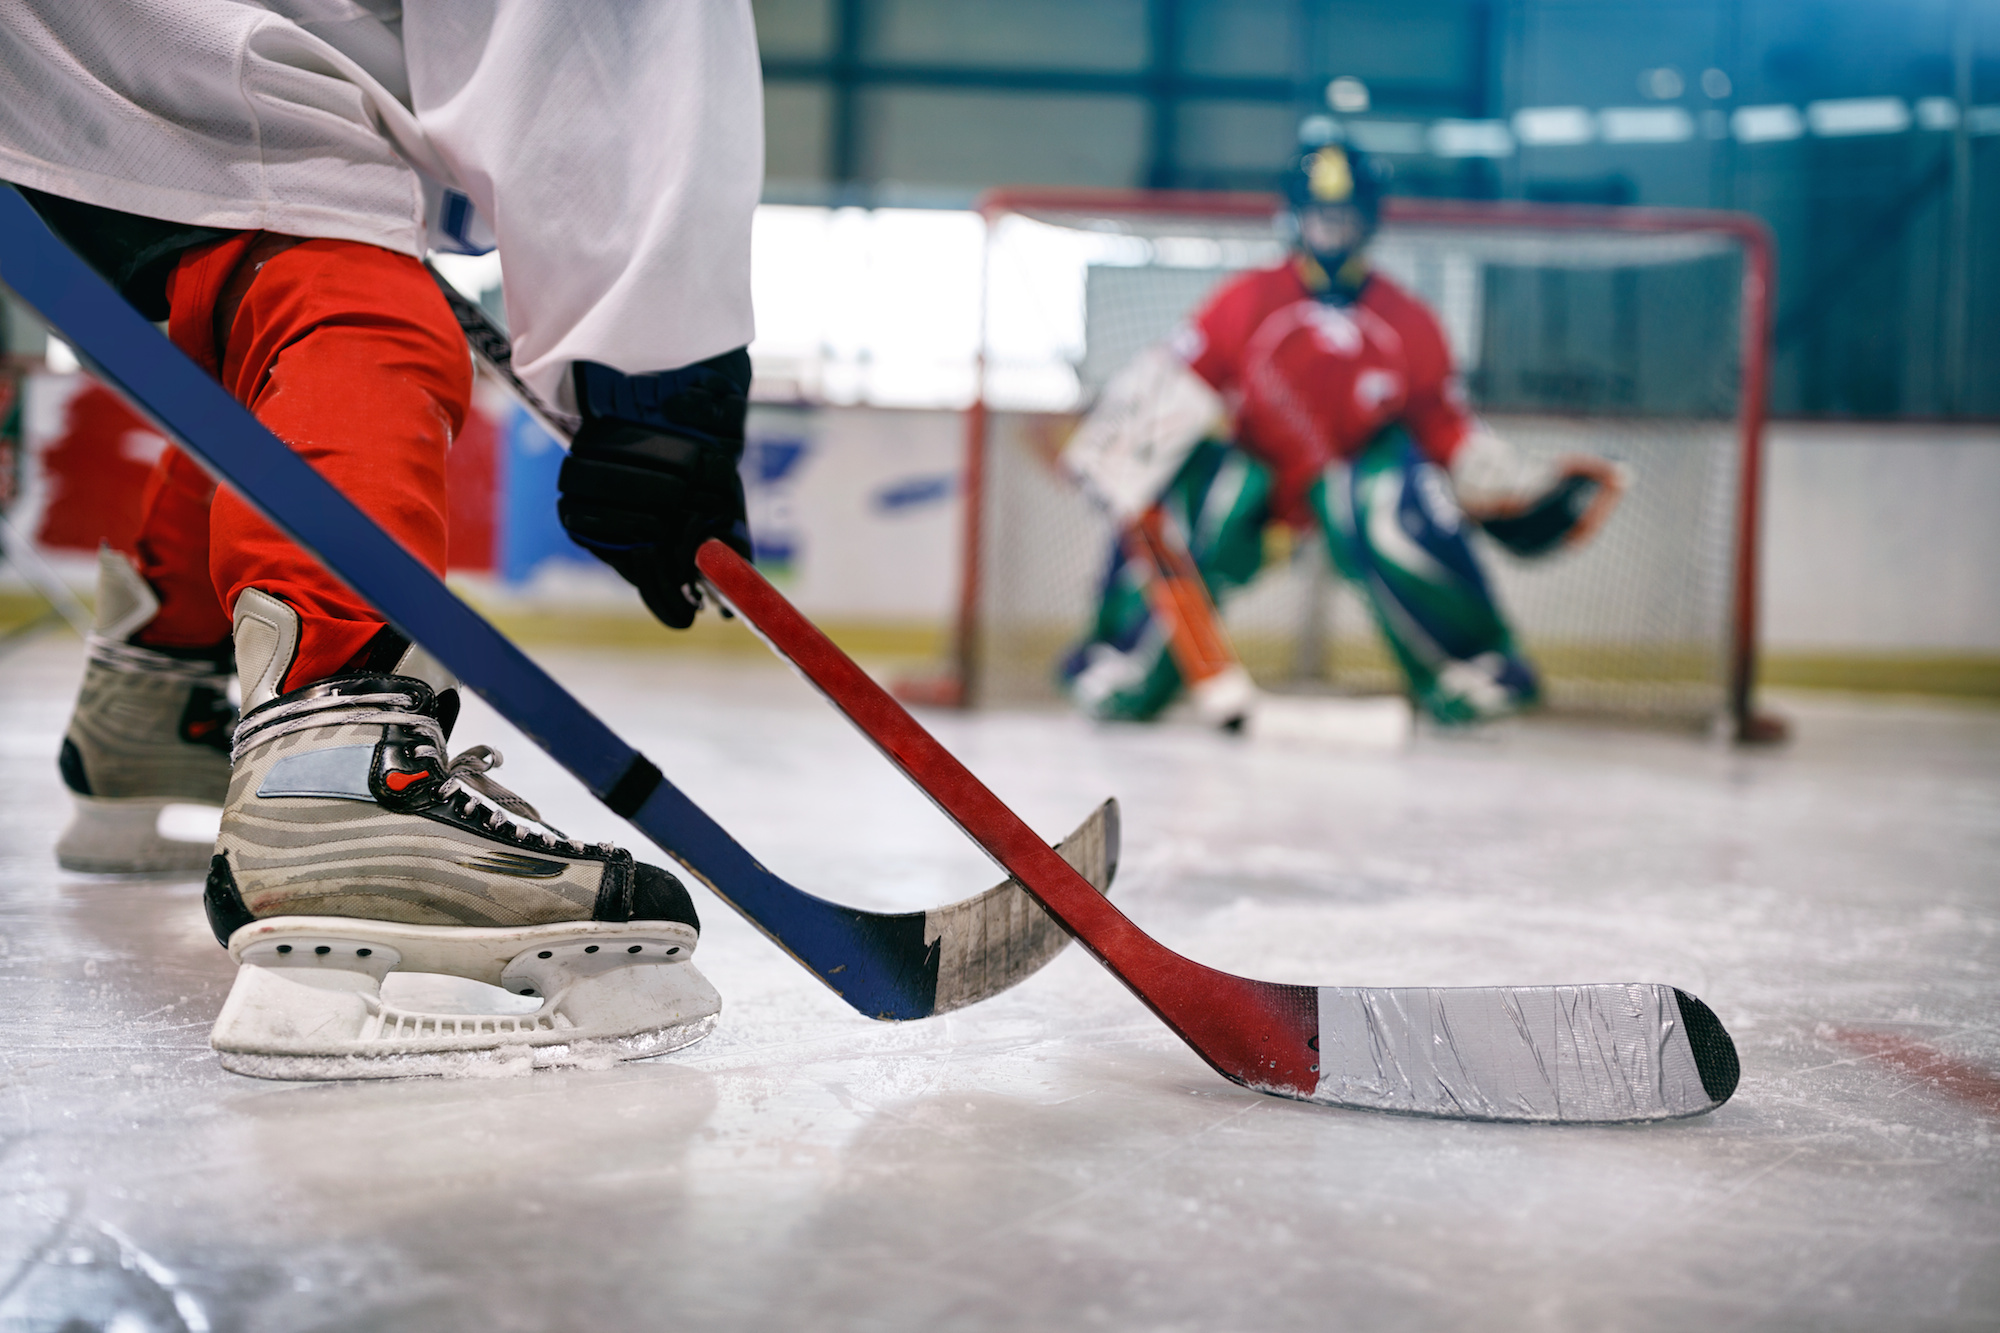 CANADA: Are we choosing 'play-to-win attitudes' for victory in youth hockey over personal development?